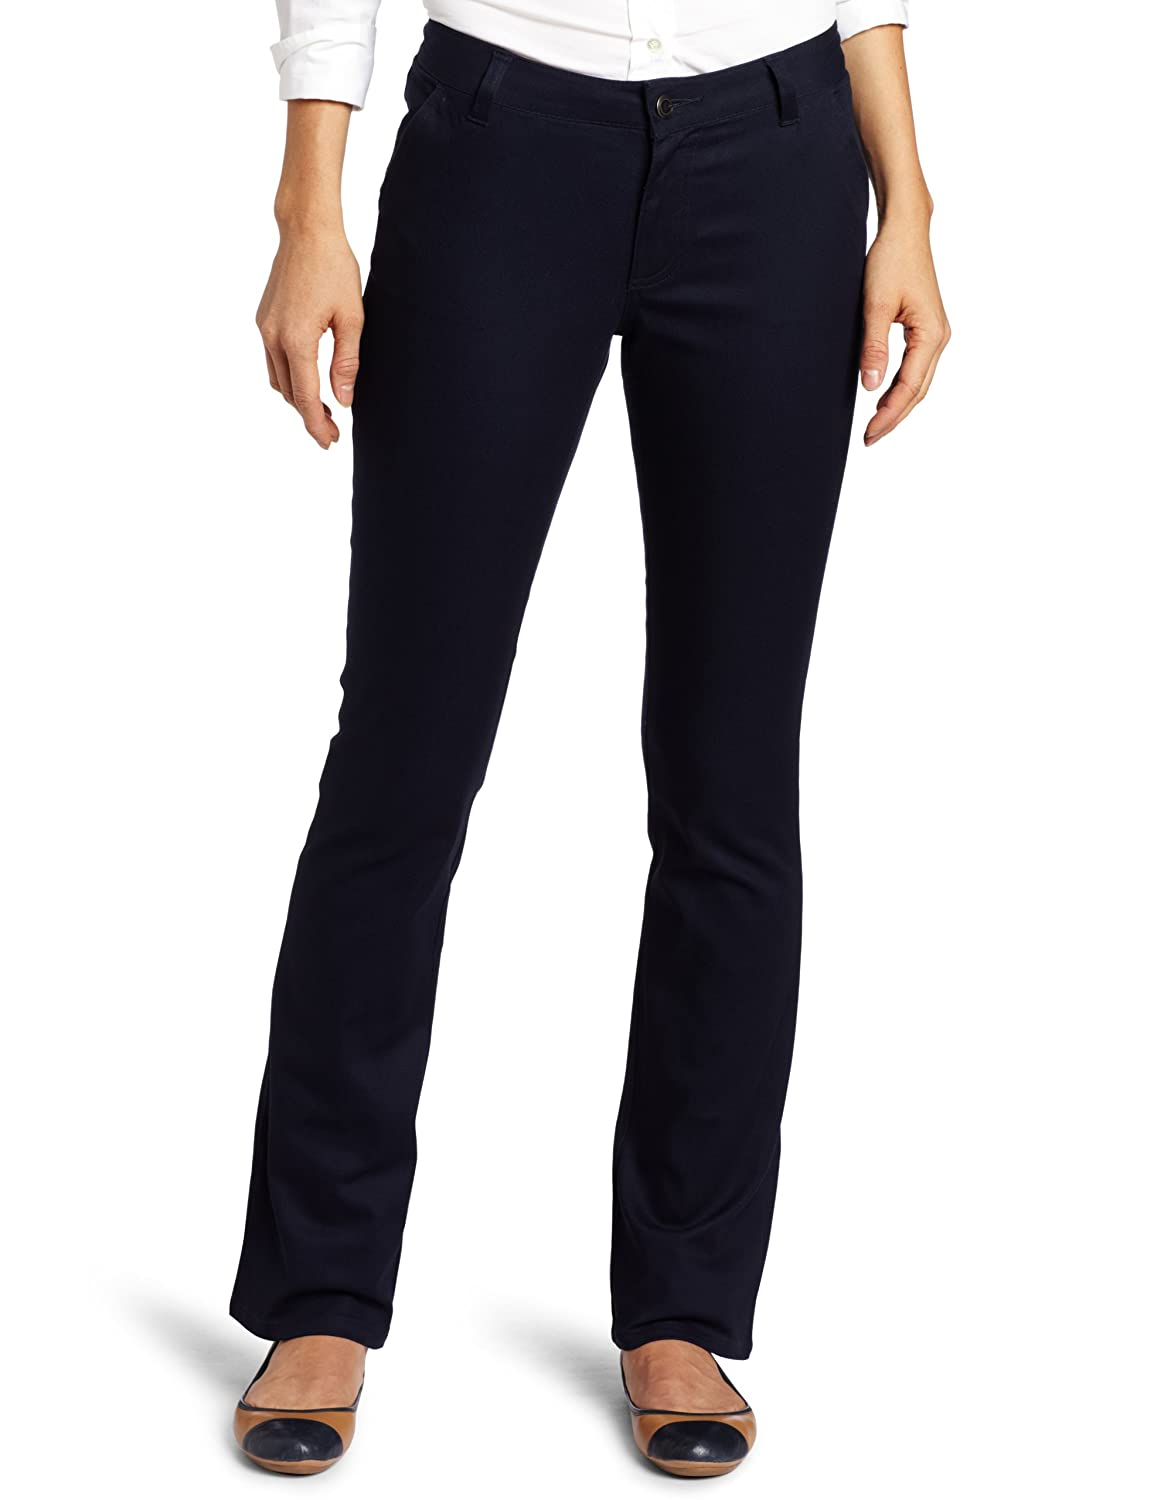 Lee Womens Curvey Straight Leg Pant Lee Uniform - Juniors K9438JL